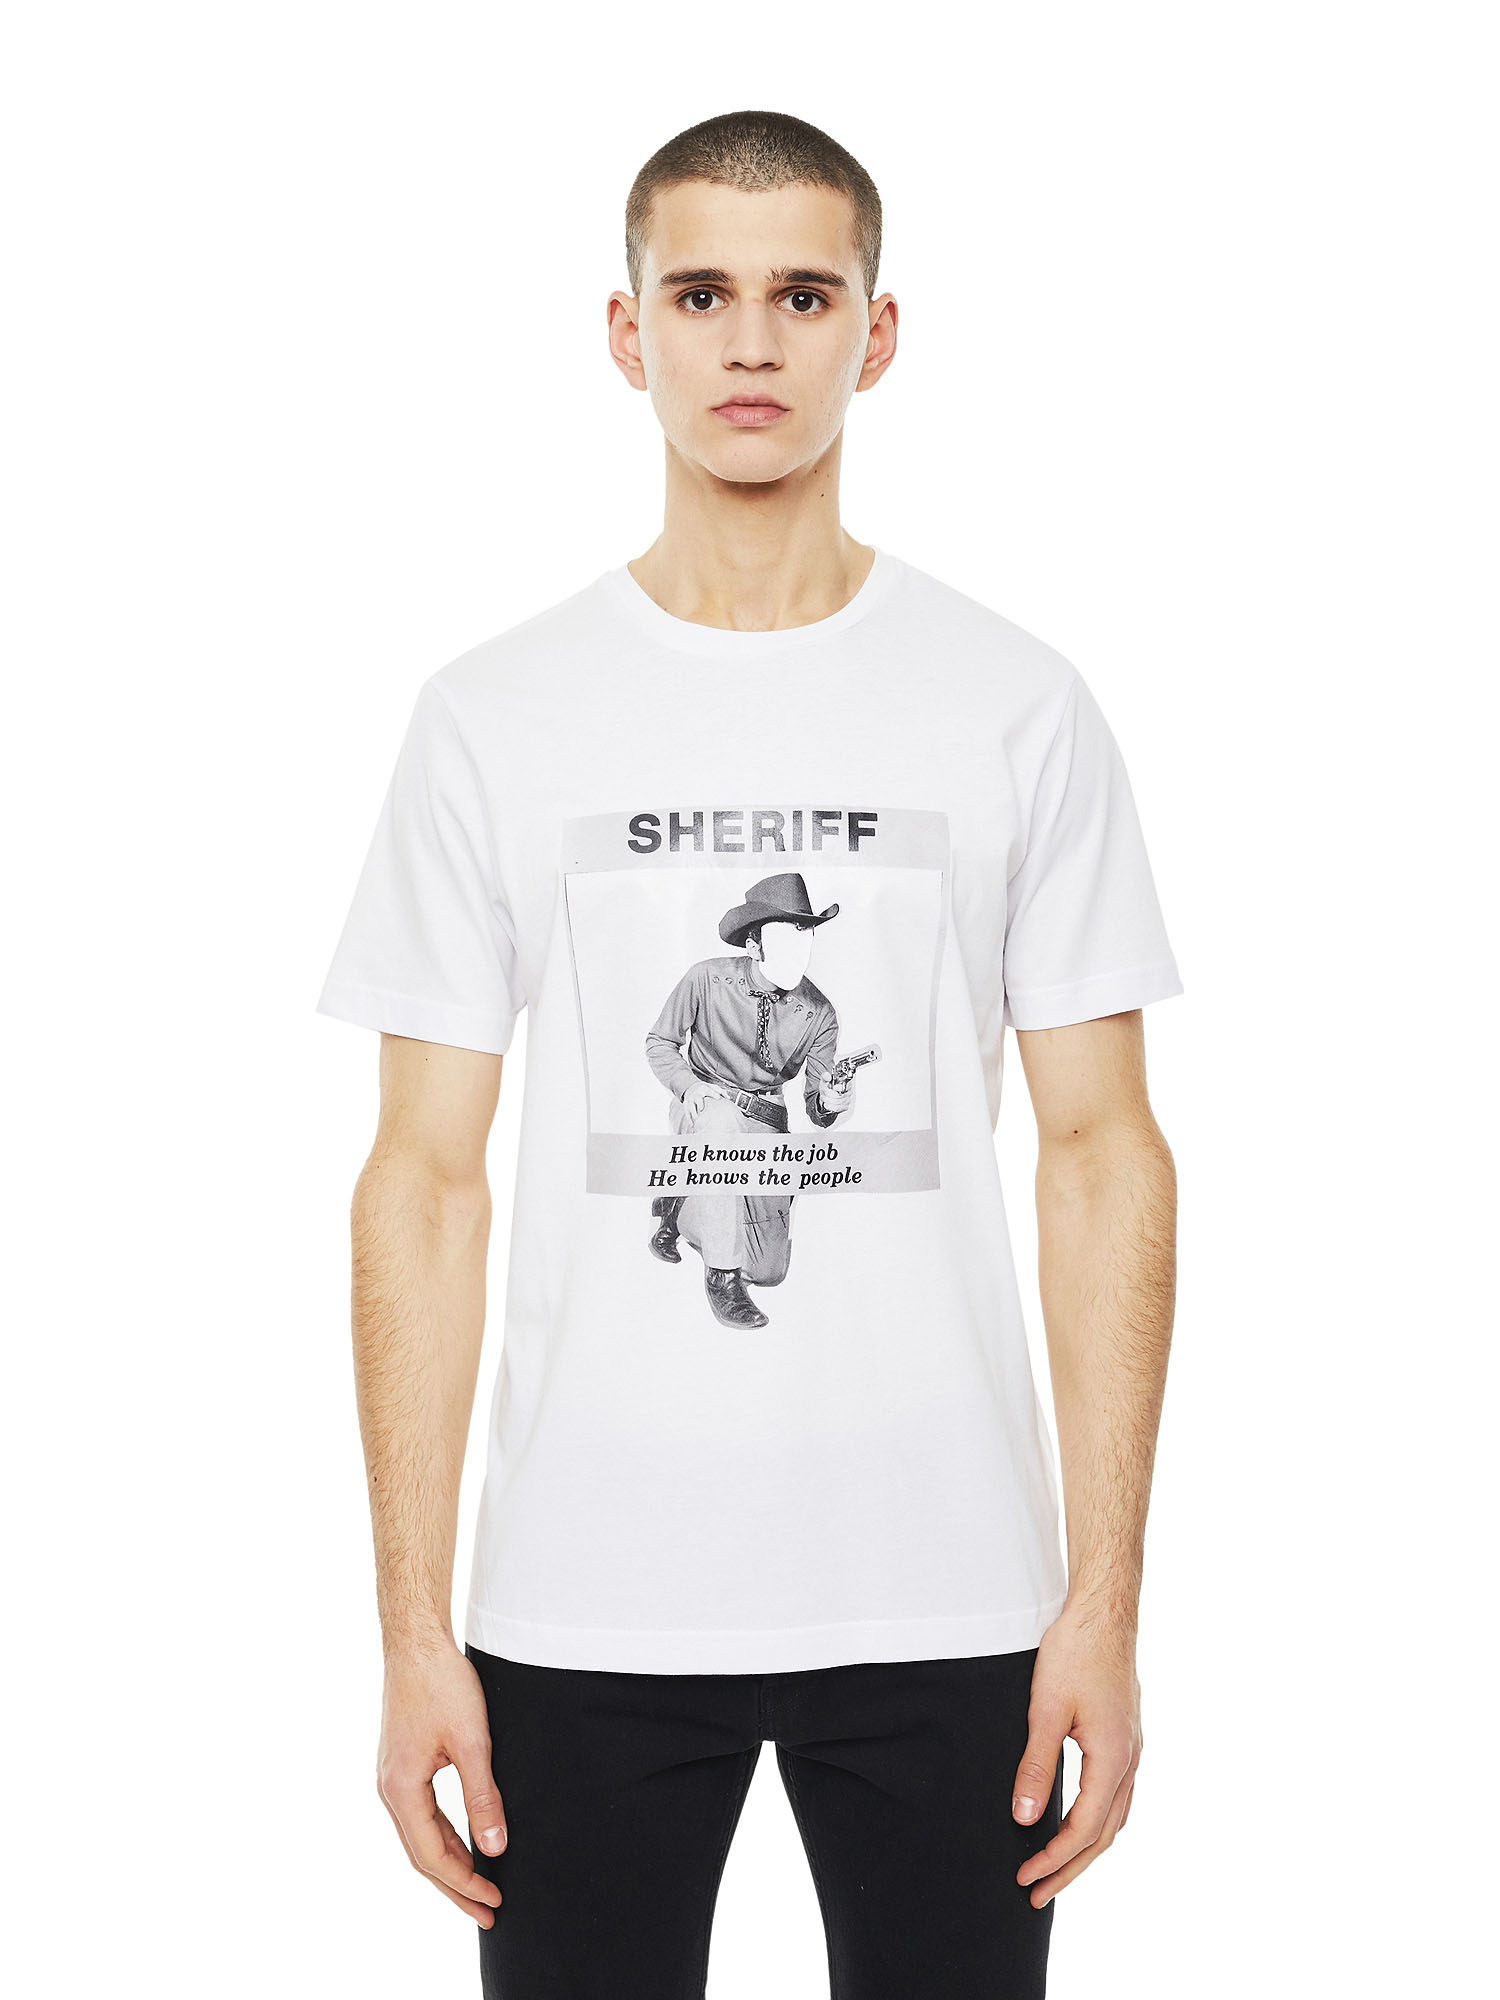 Diesel - TY-BIGSHERIFF,  - T-Shirts - Image 1